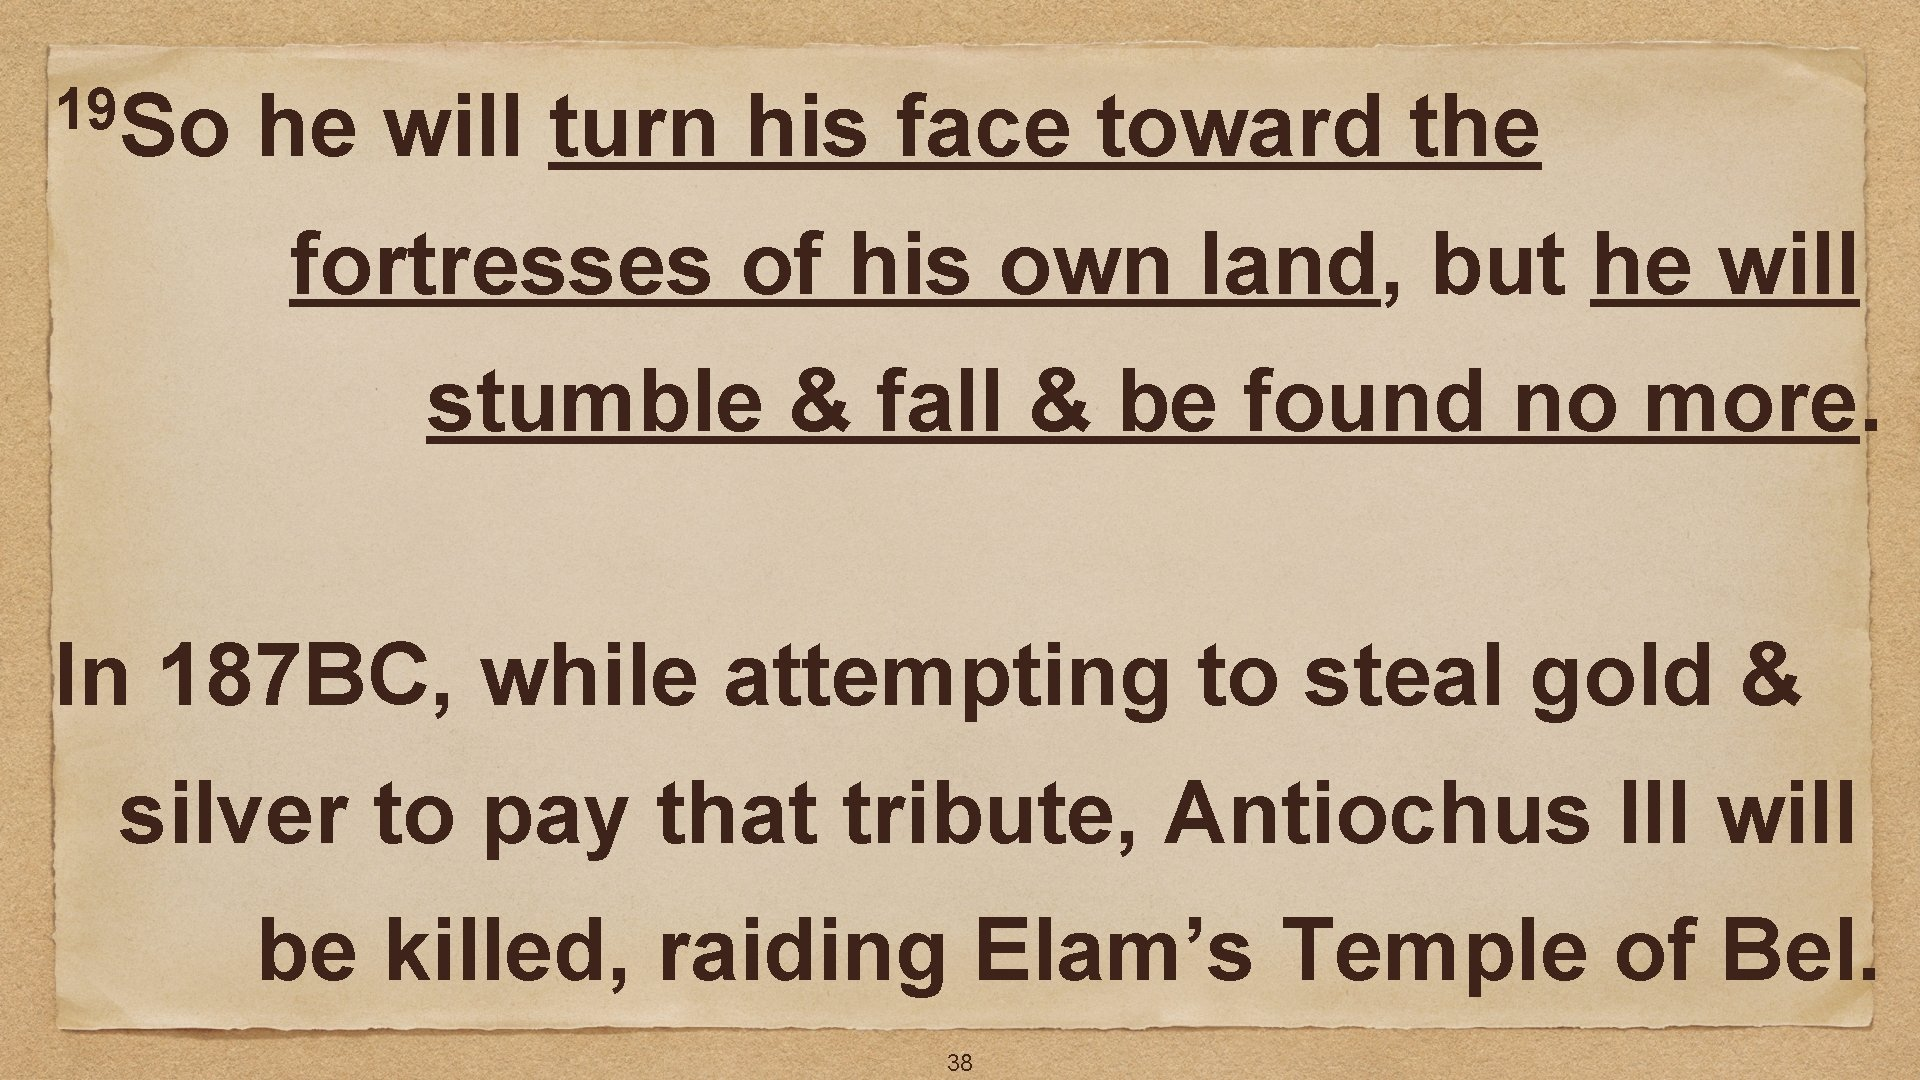 19 So he will turn his face toward the fortresses of his own land,